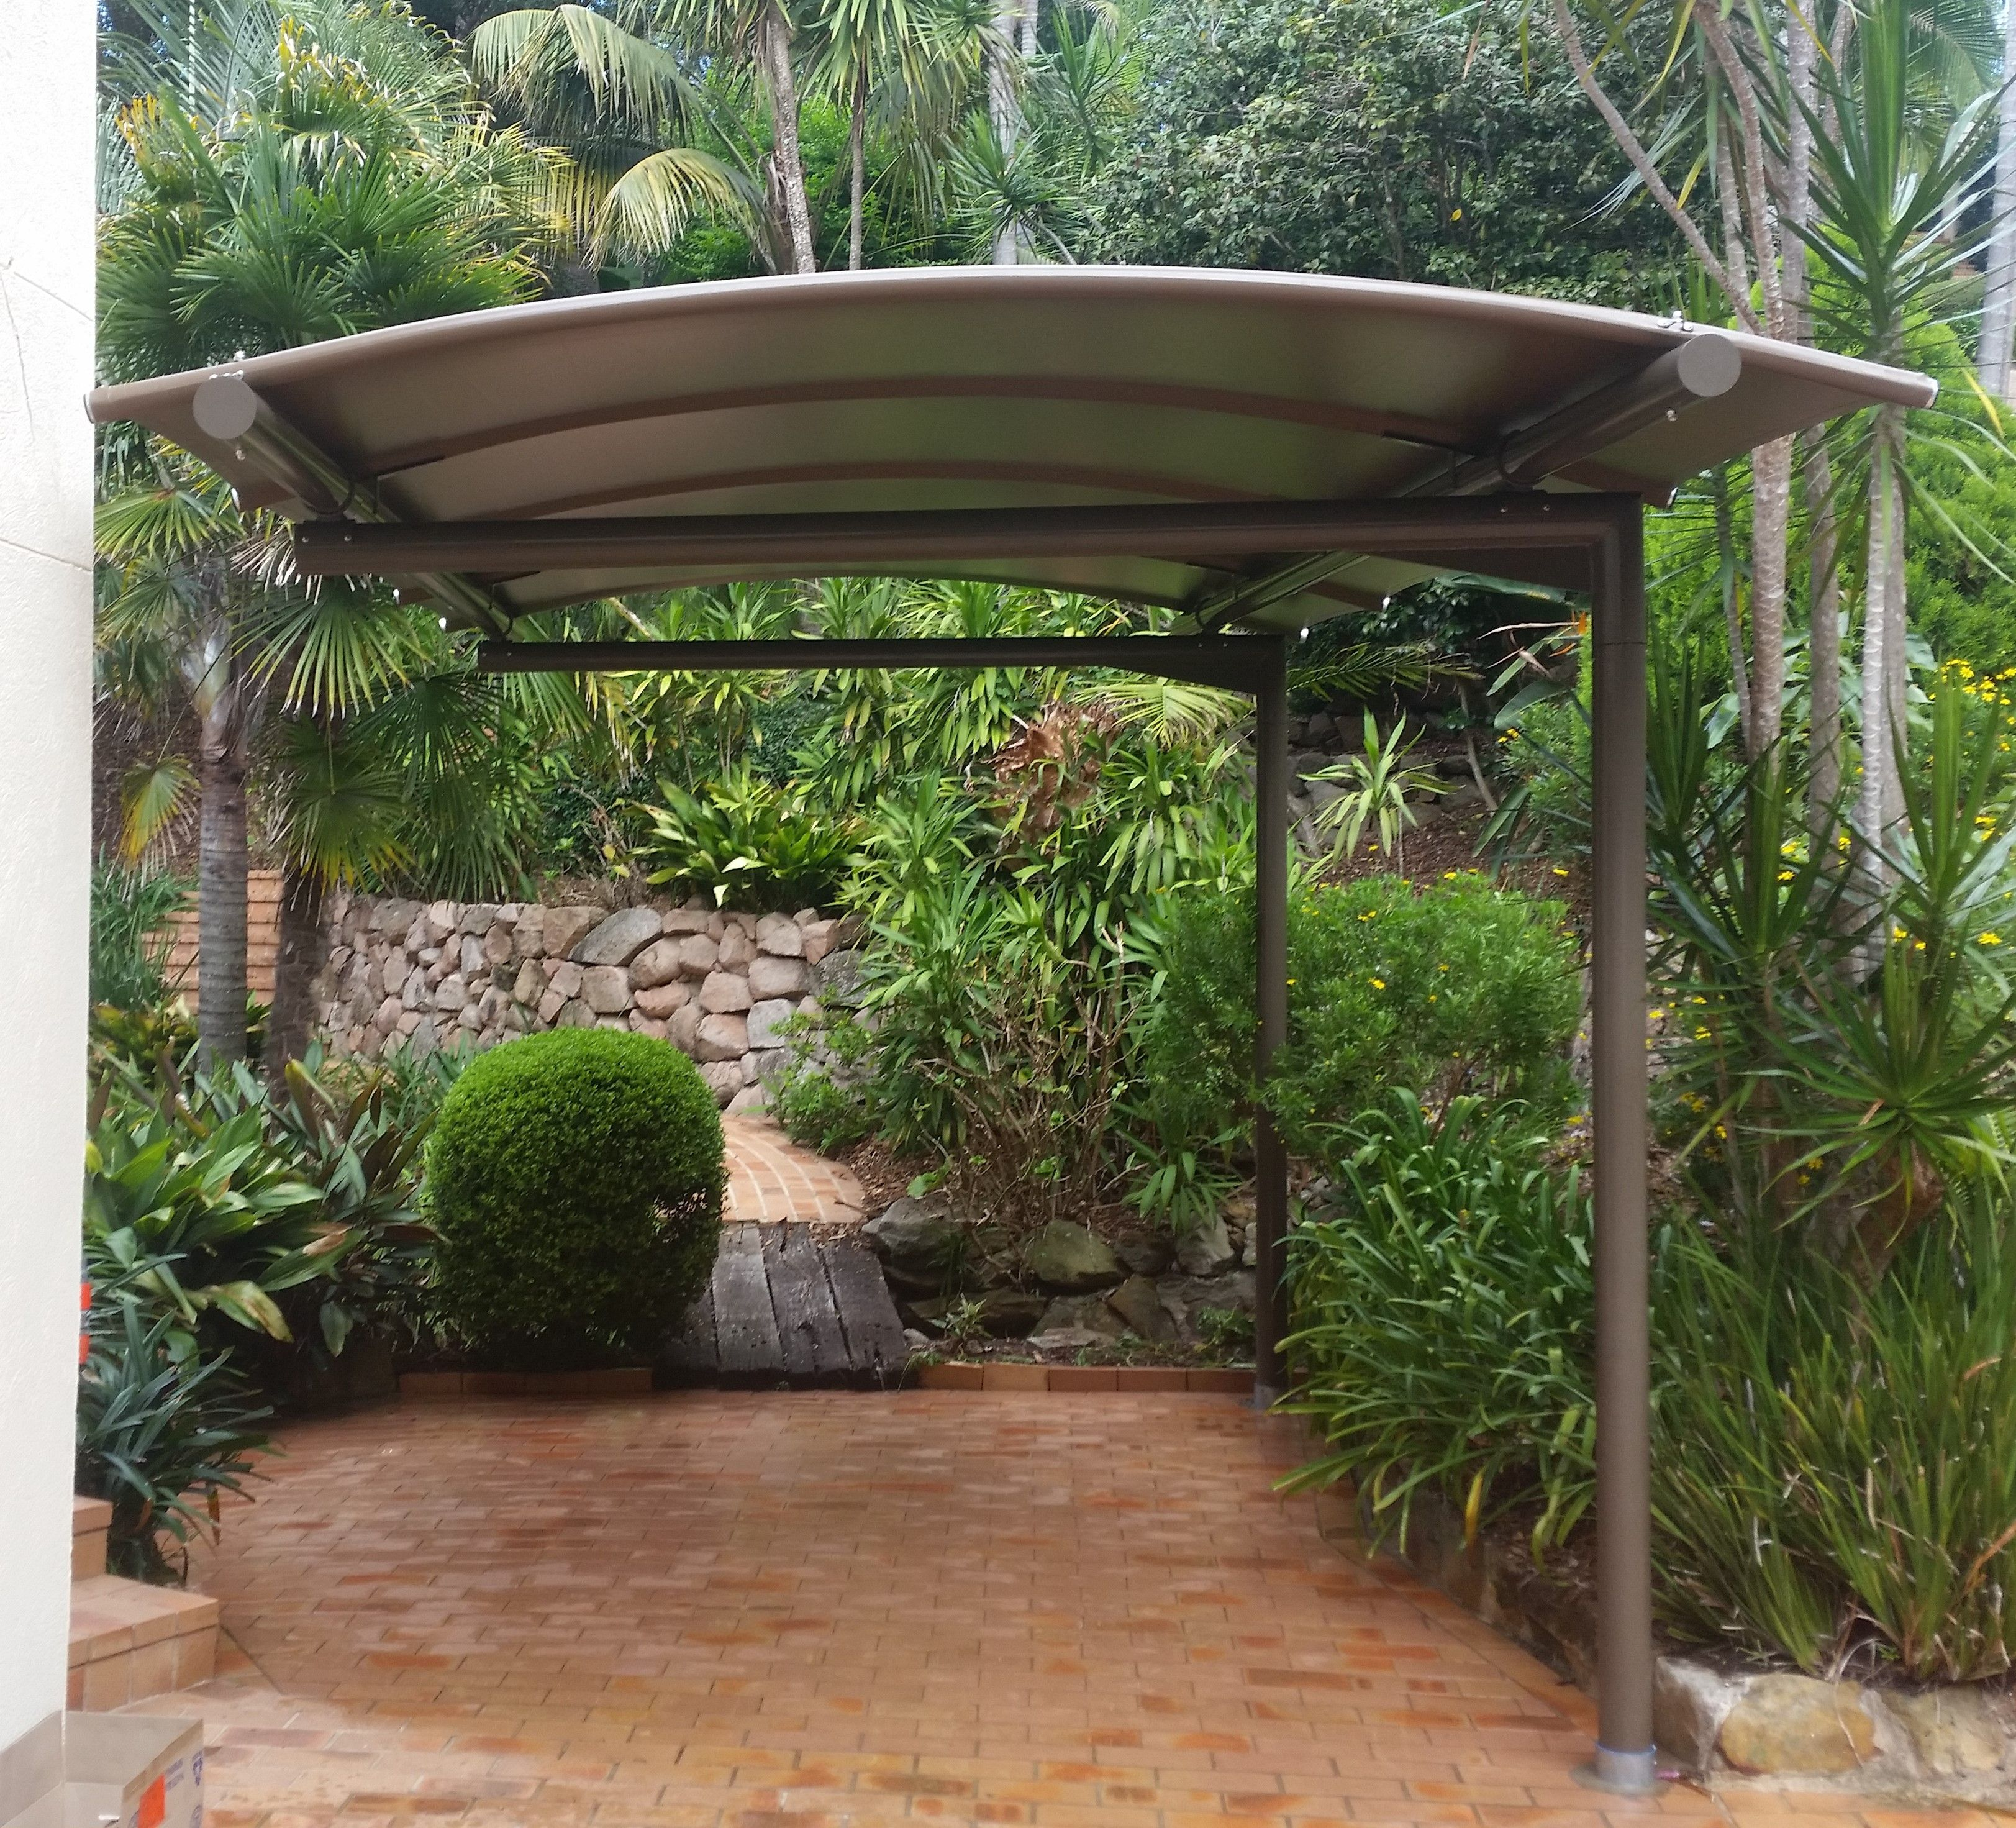 A Cantilevered Awning Is The Perfect Solution To This Small Car Space Car Porch Pergola Carport Carport Garage Cantilever Carport